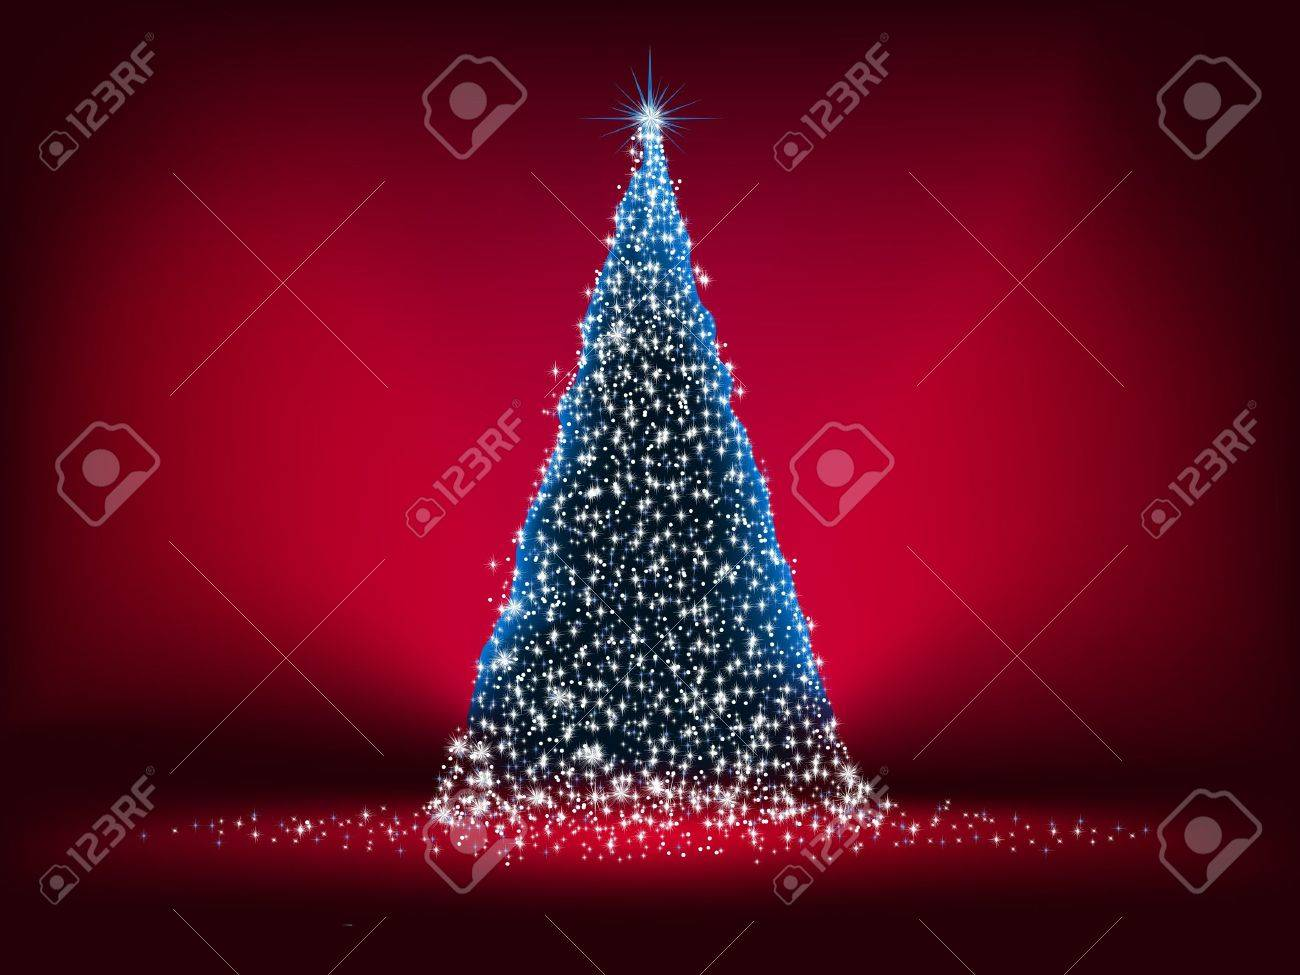 Abstract Christmas tree, with stars, snowflakes and light glow. EPS 8 vector file included Stock Vector - 9570825